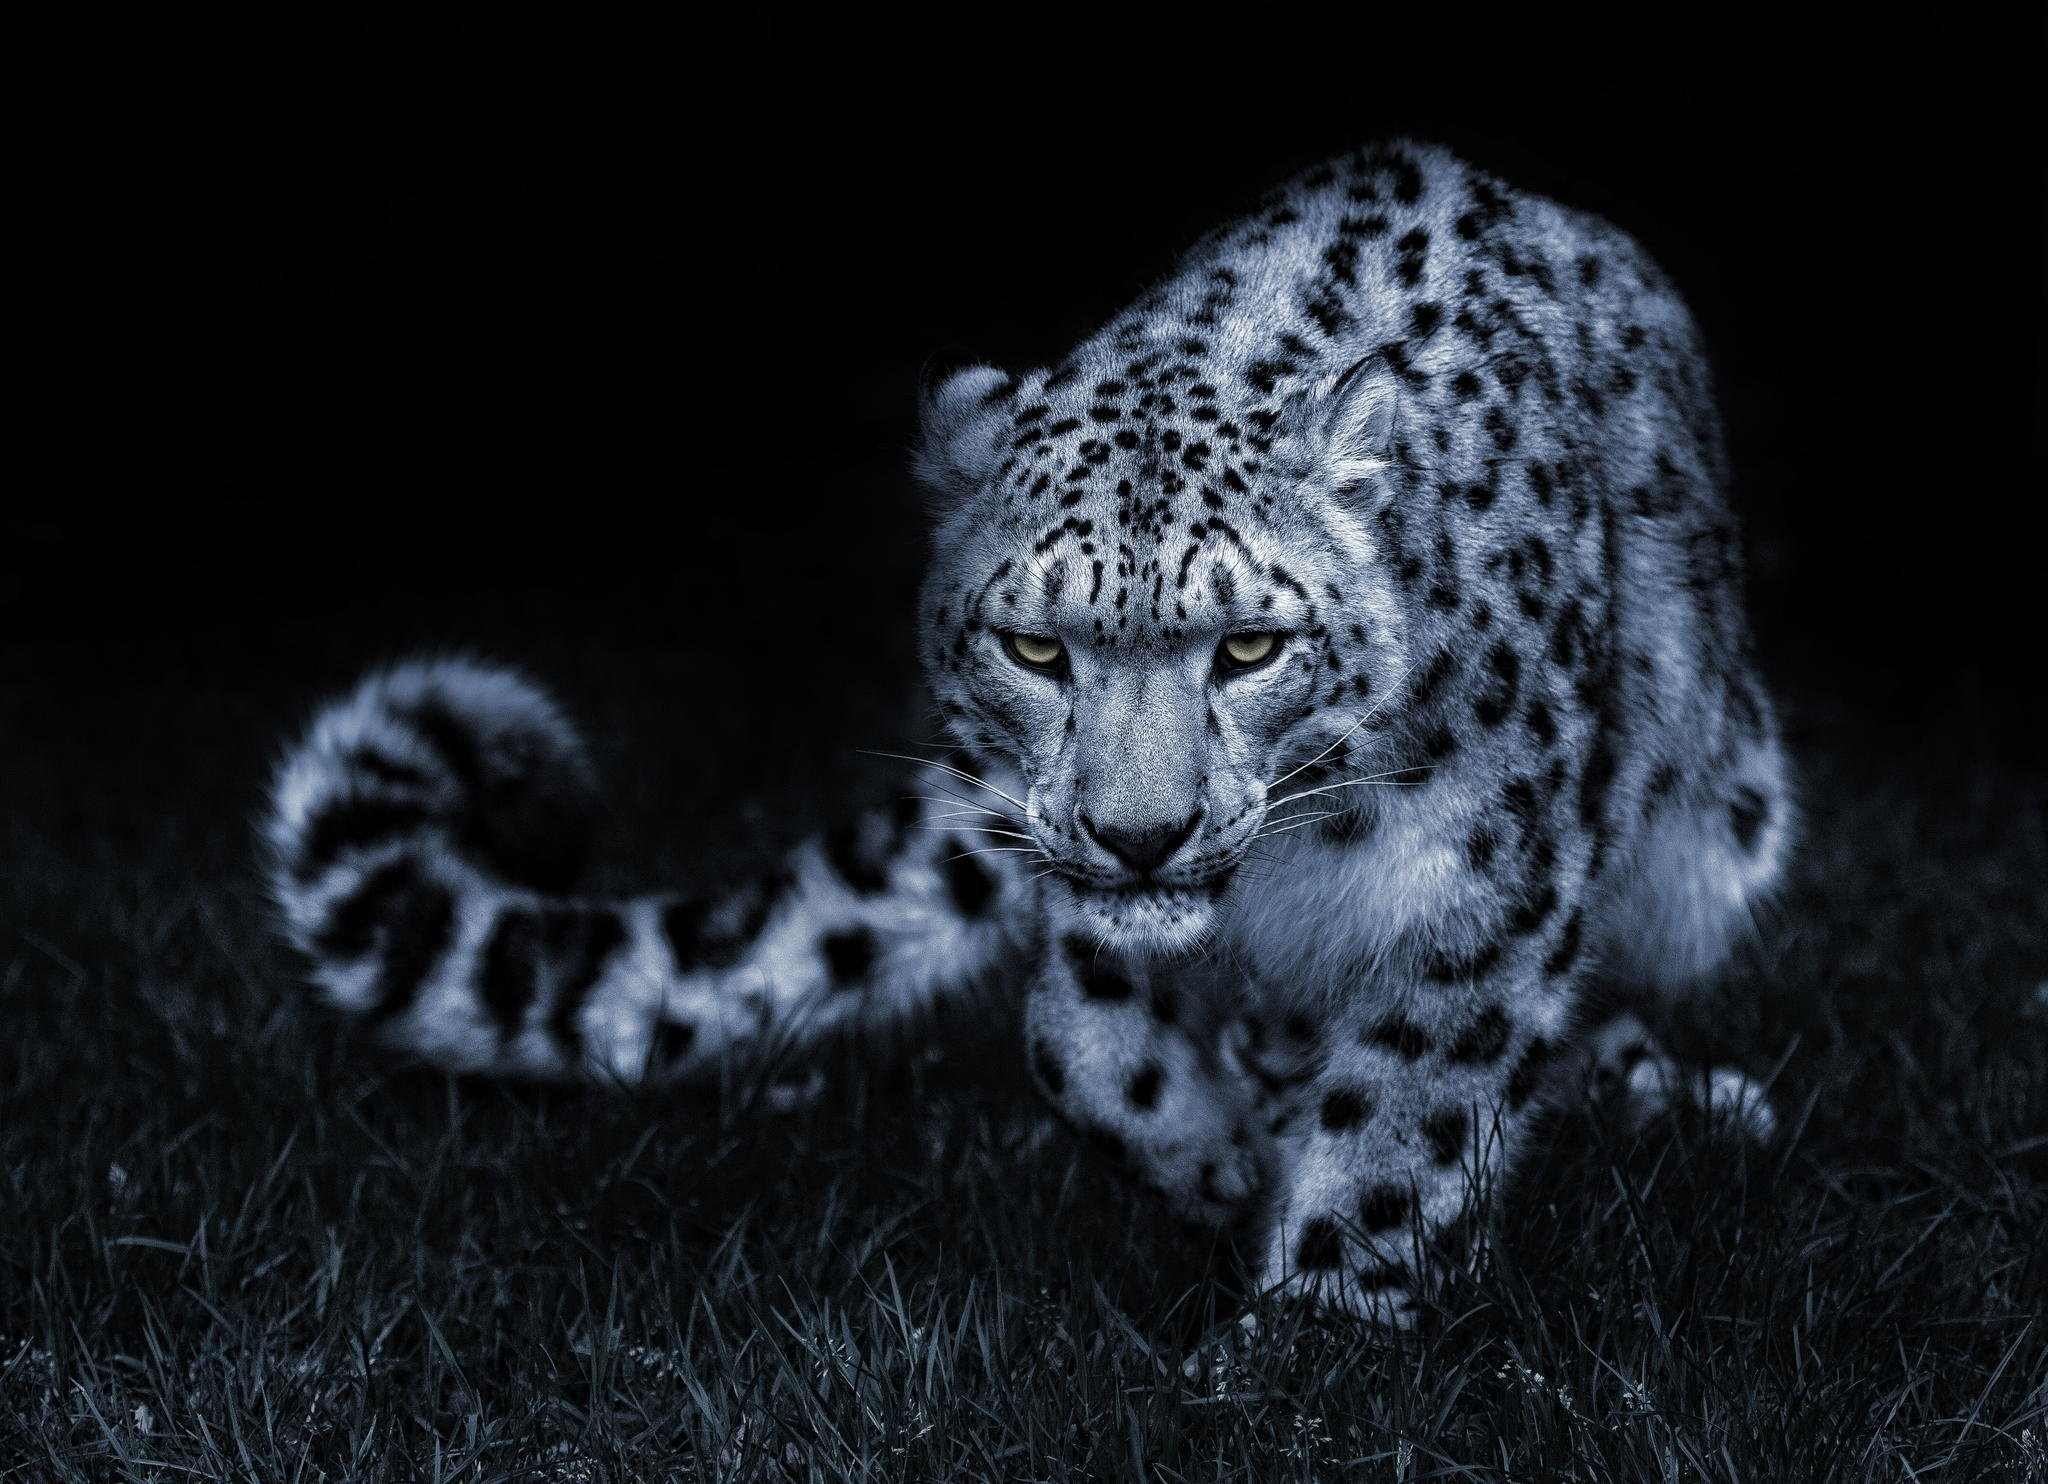 Snow leopard black and white posture eyes cat wallpaper 2048x1484 2048x1484